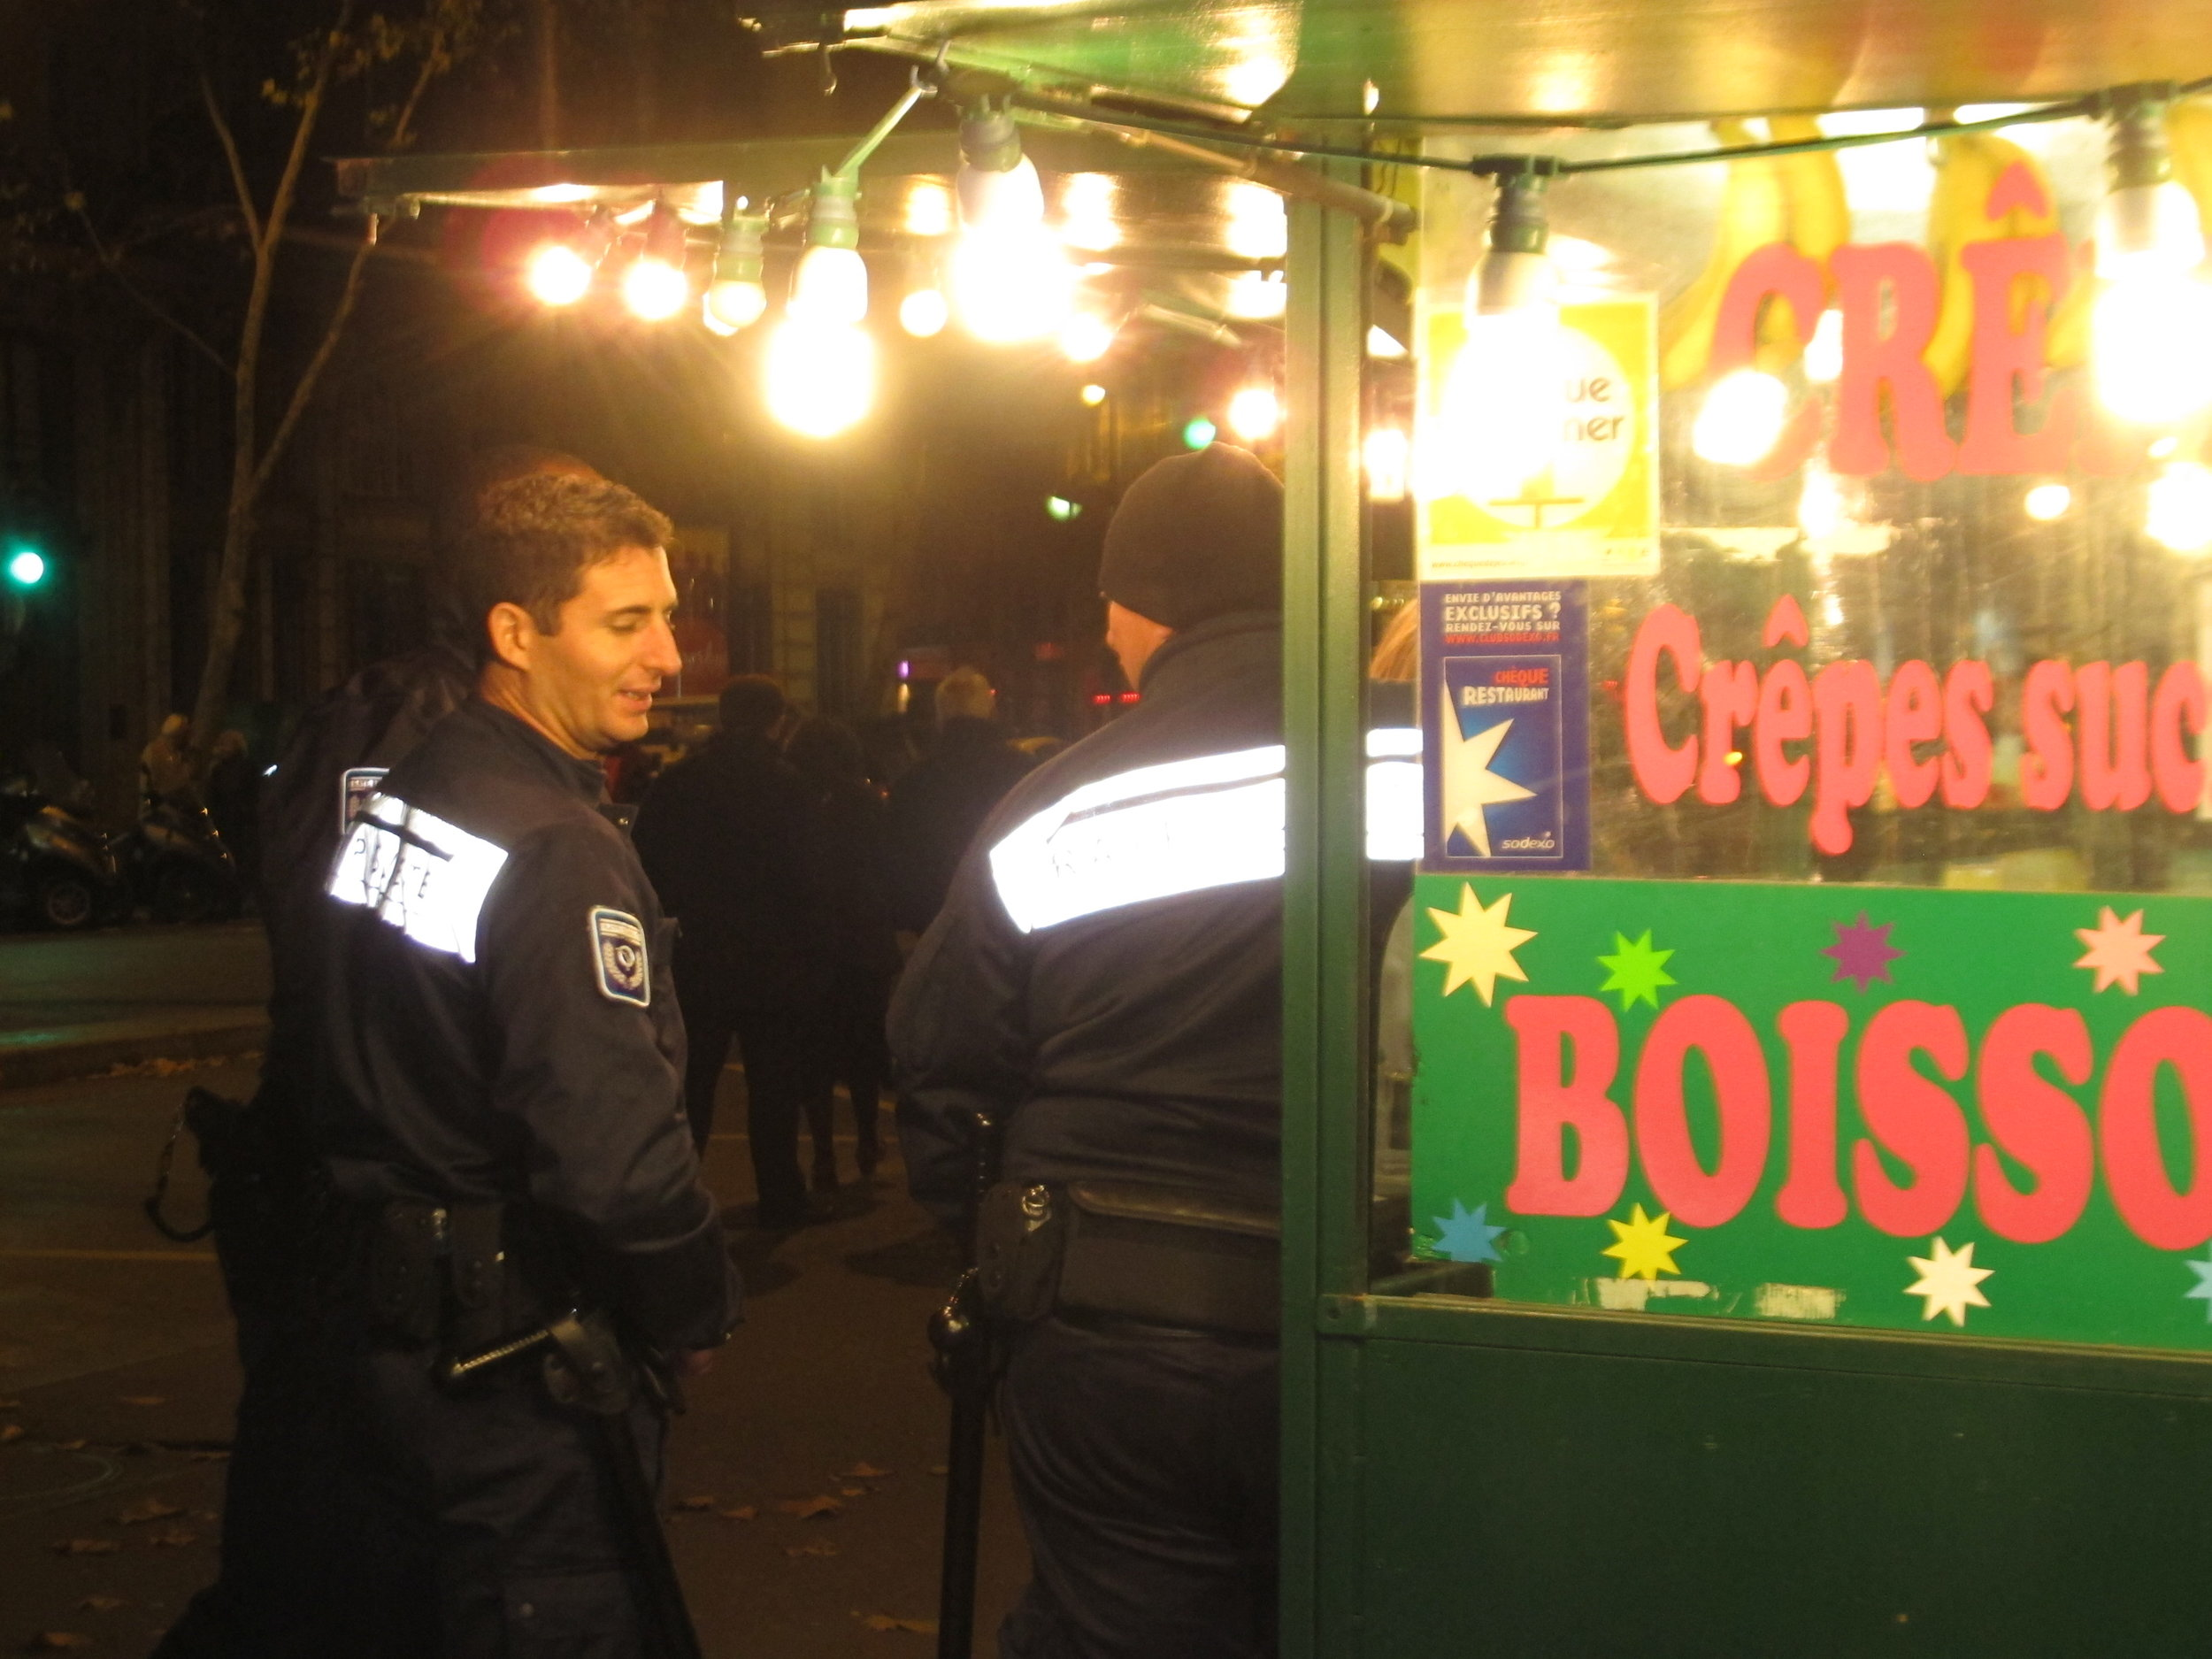 """Flics  at a crêpe stand –the French version of cops at a donut shop. When this  flic  saw the flash from my camera, he turned around and said, """"No photos!"""" Then he cracked up and said, """"Just kidding."""" Photo: Elizabeth Kemble"""